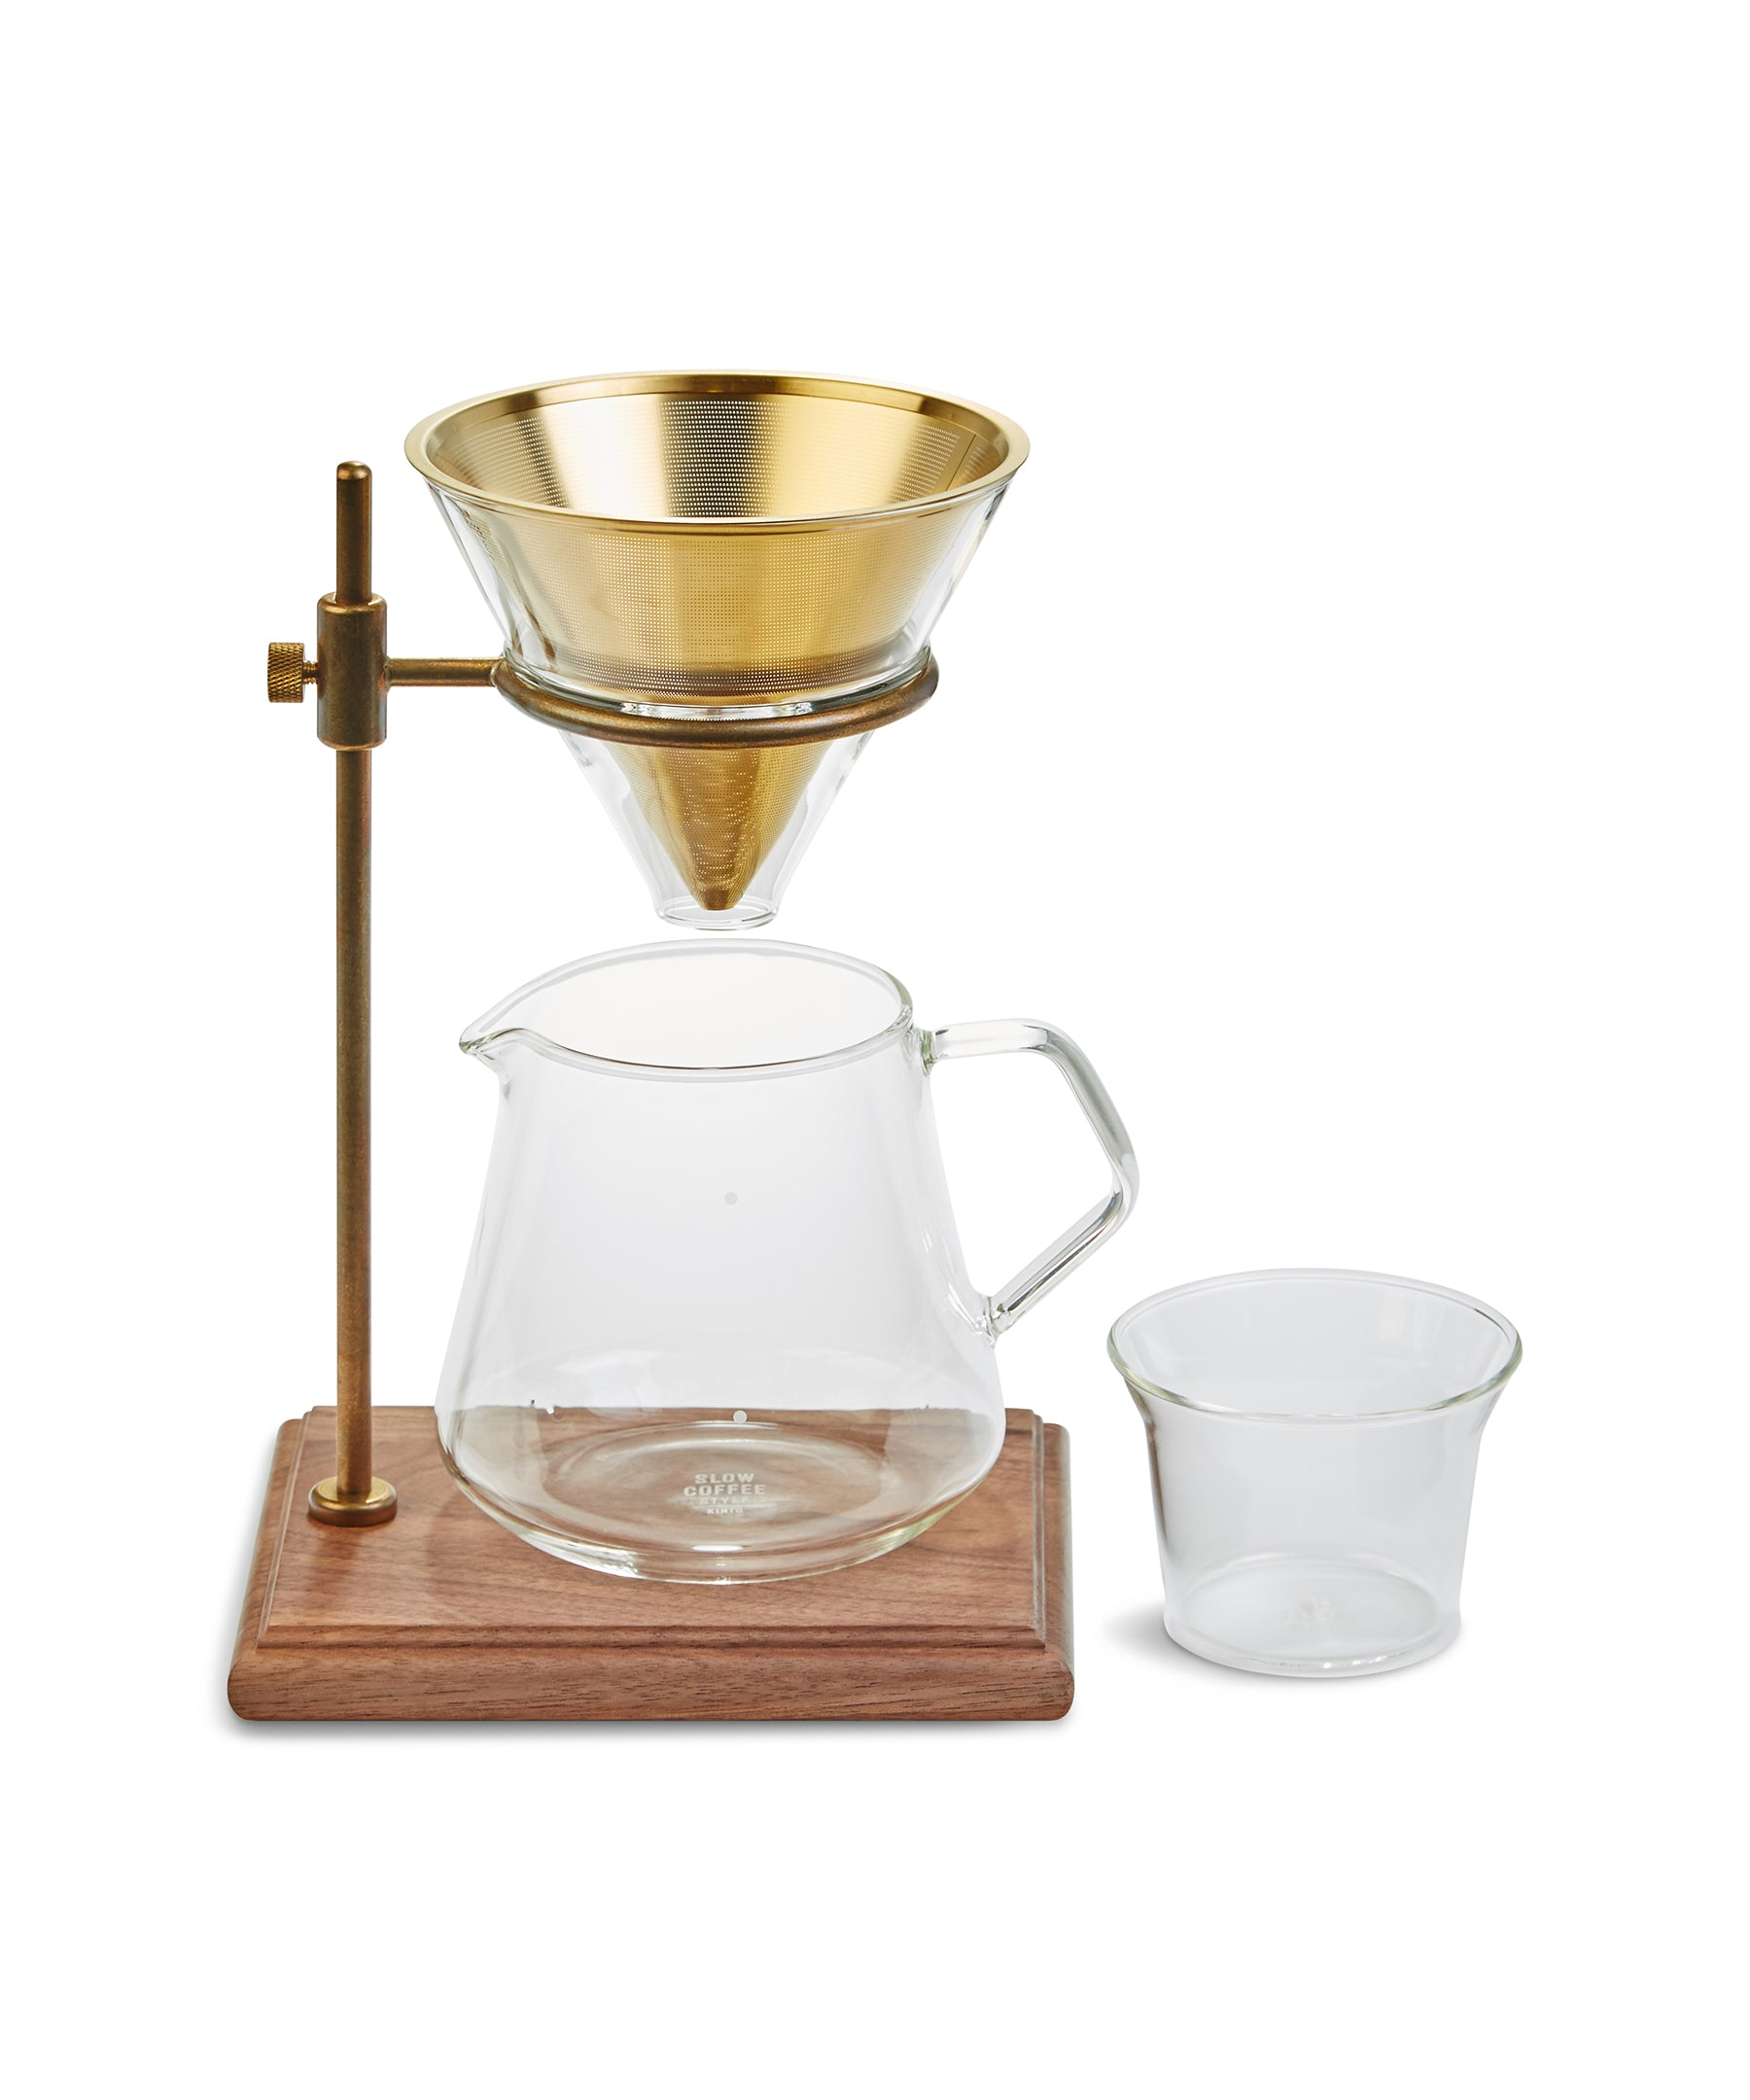 SCS-S02 Coffee Brewer Set 4 cup by Kinto